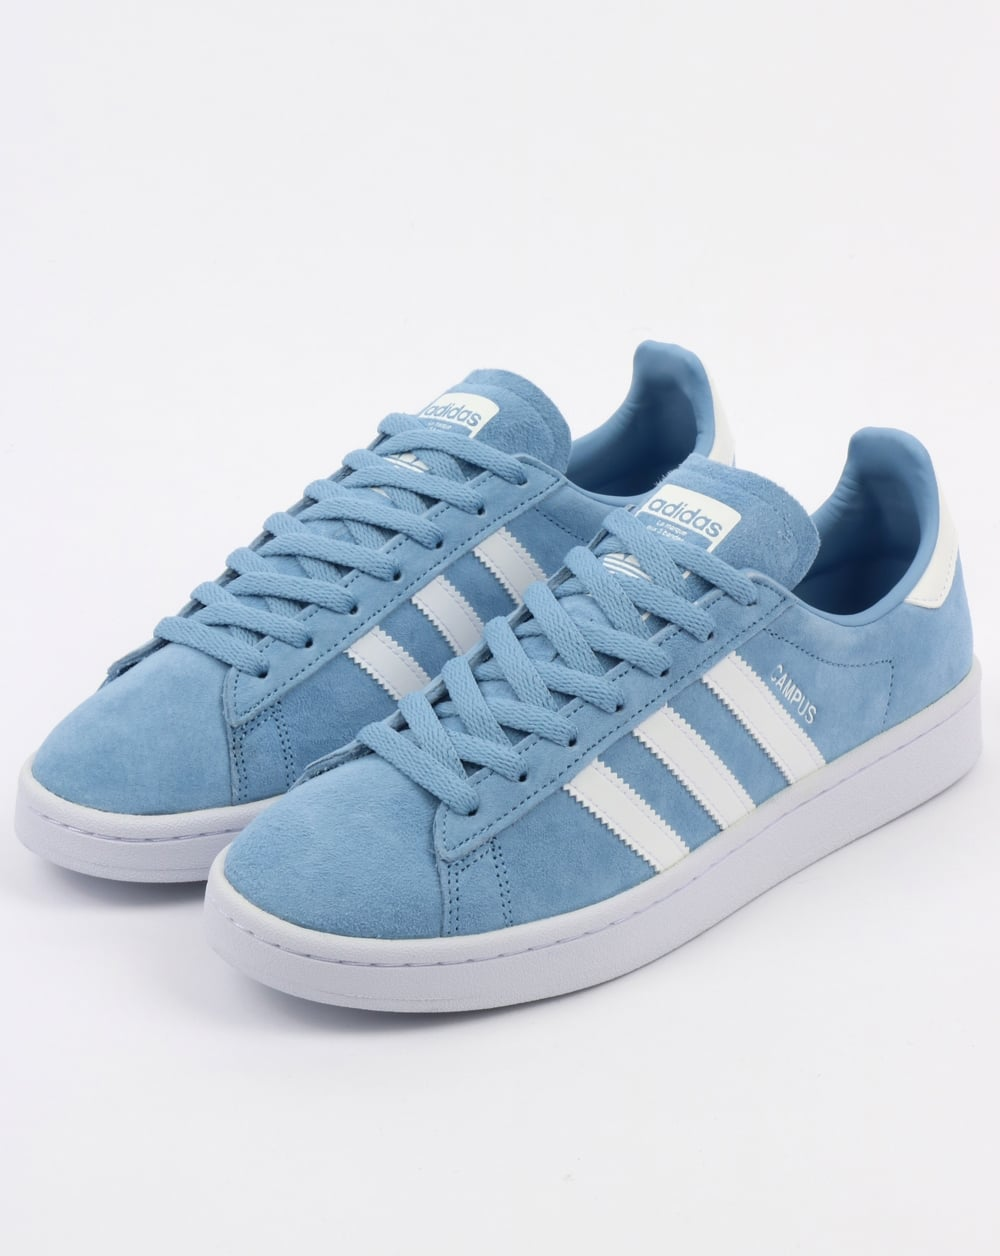 watch 713dc fc617 Adidas Campus Trainers Sky Blue White